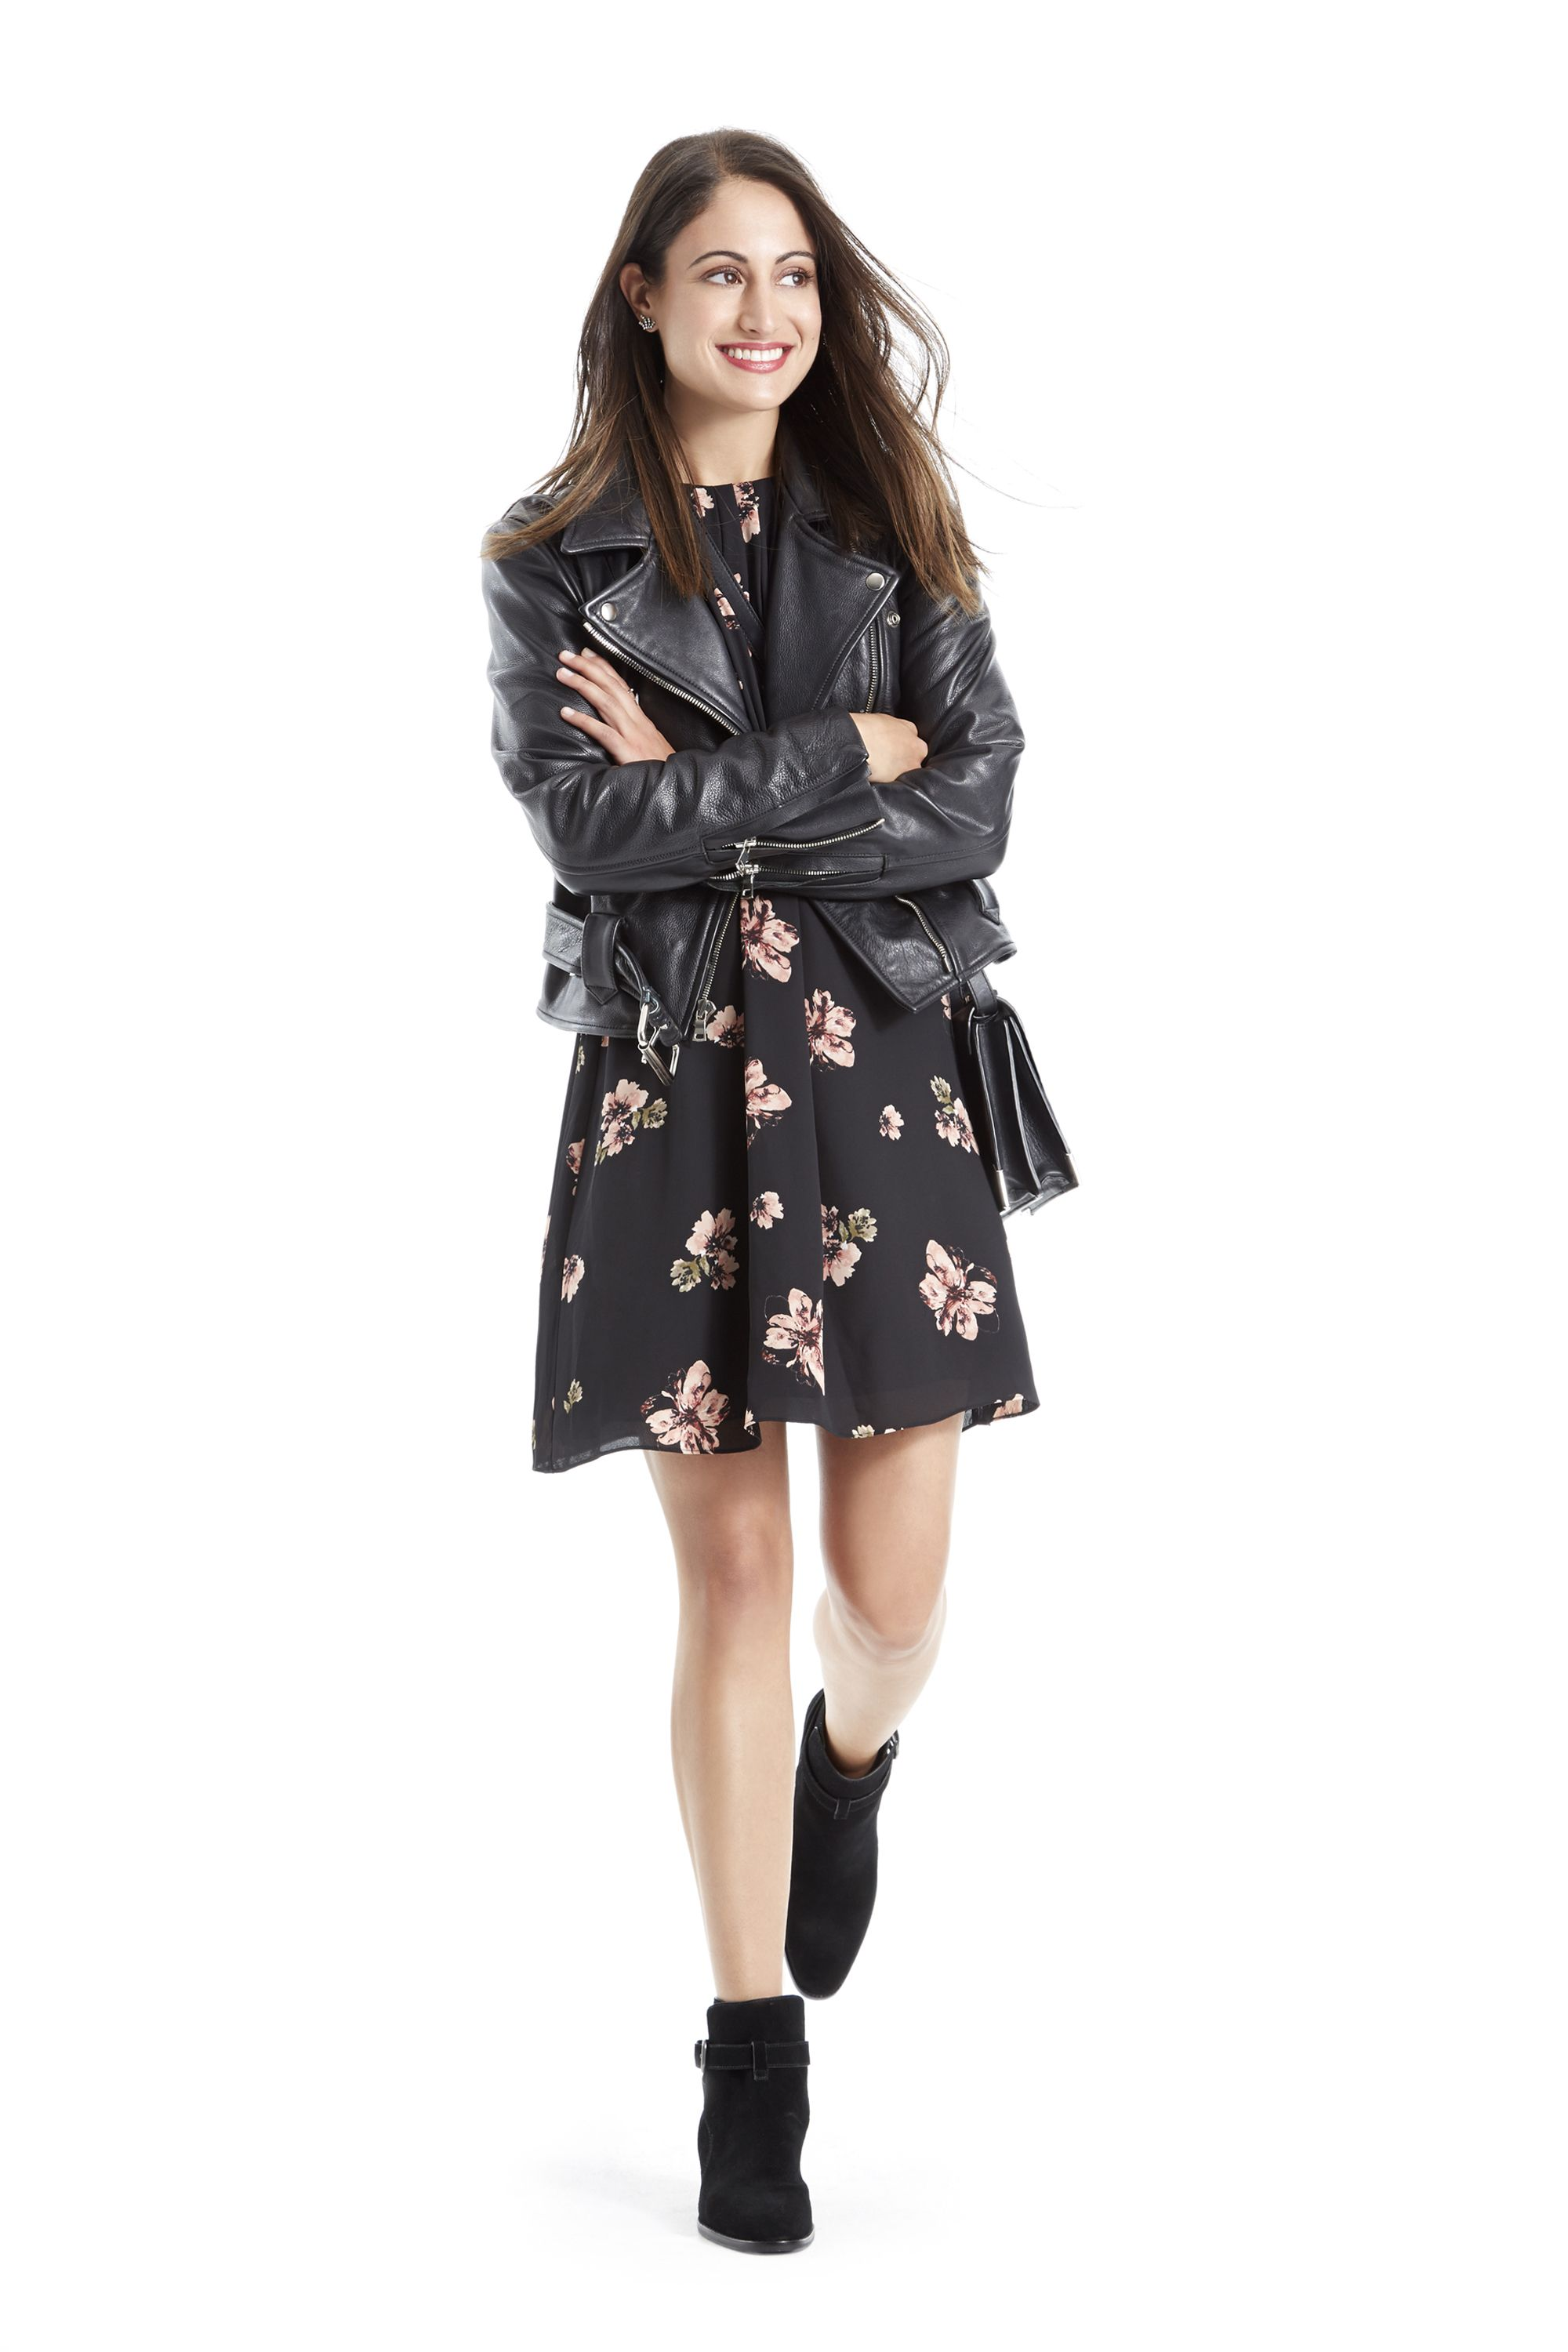 """<p>Throw a leather moto jacket over an artsy feminine floral print for a low profile, cool girl vibe that'll fit in perfectly at the latest exhibits. """"I walk around a lot, so a chunky heel is important for me,"""" says Fawbush. """"This boot is ideal for everyday.""""</p>"""